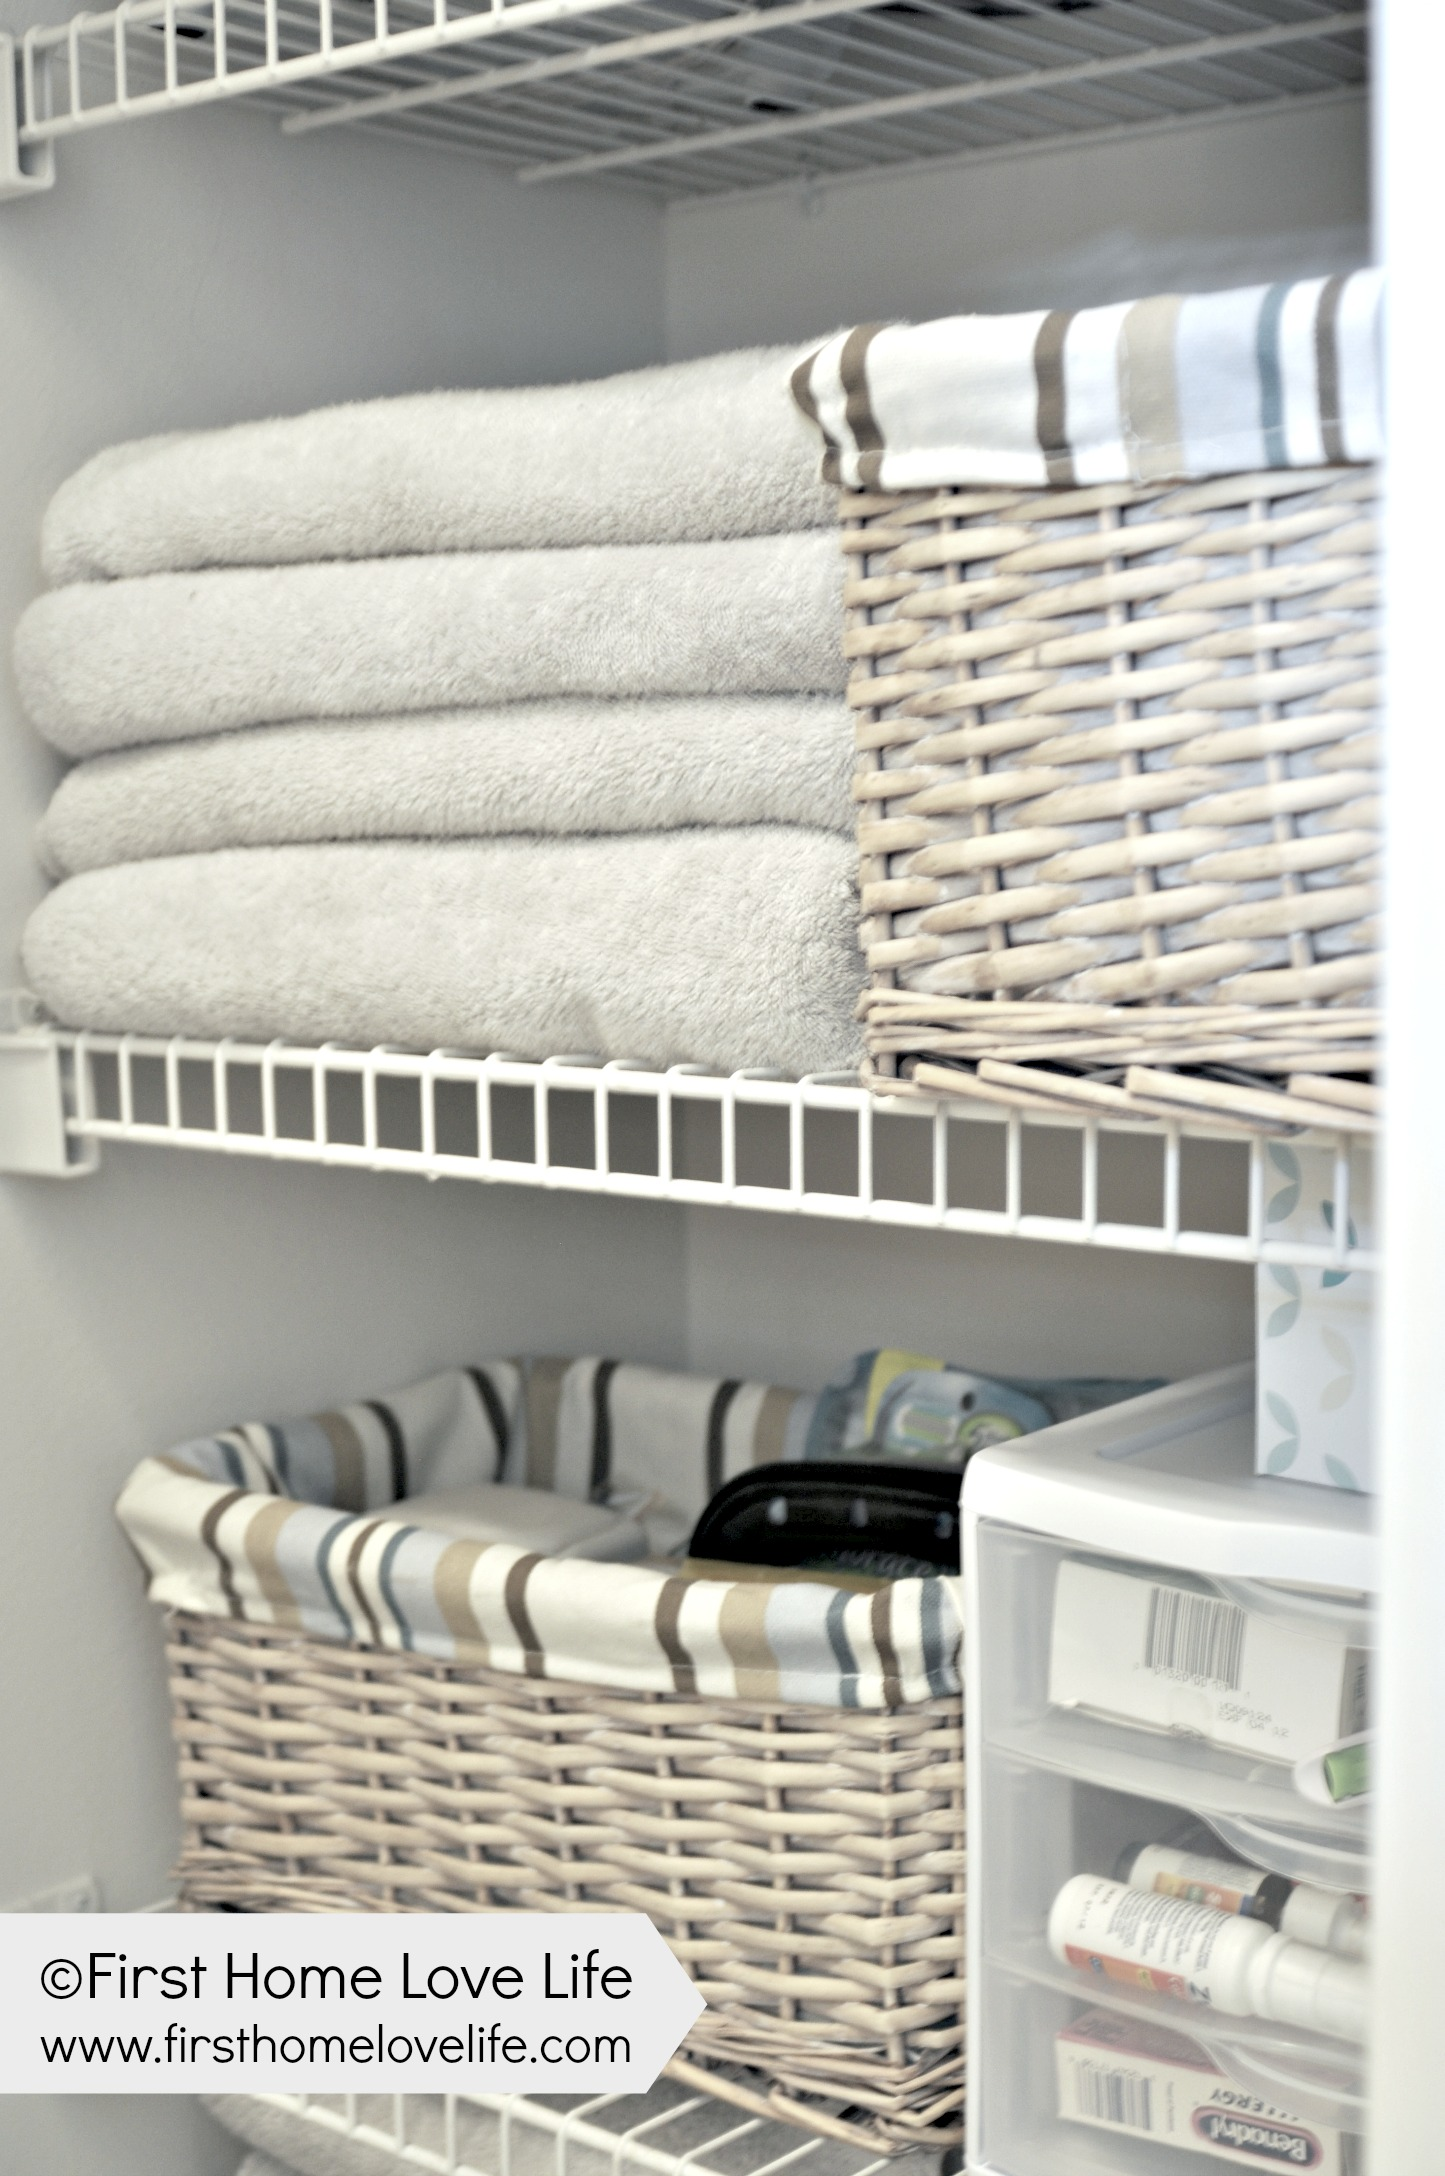 Linen Closet Organizer Systems Linen Closet Organization And Closet Pharmacy First Home